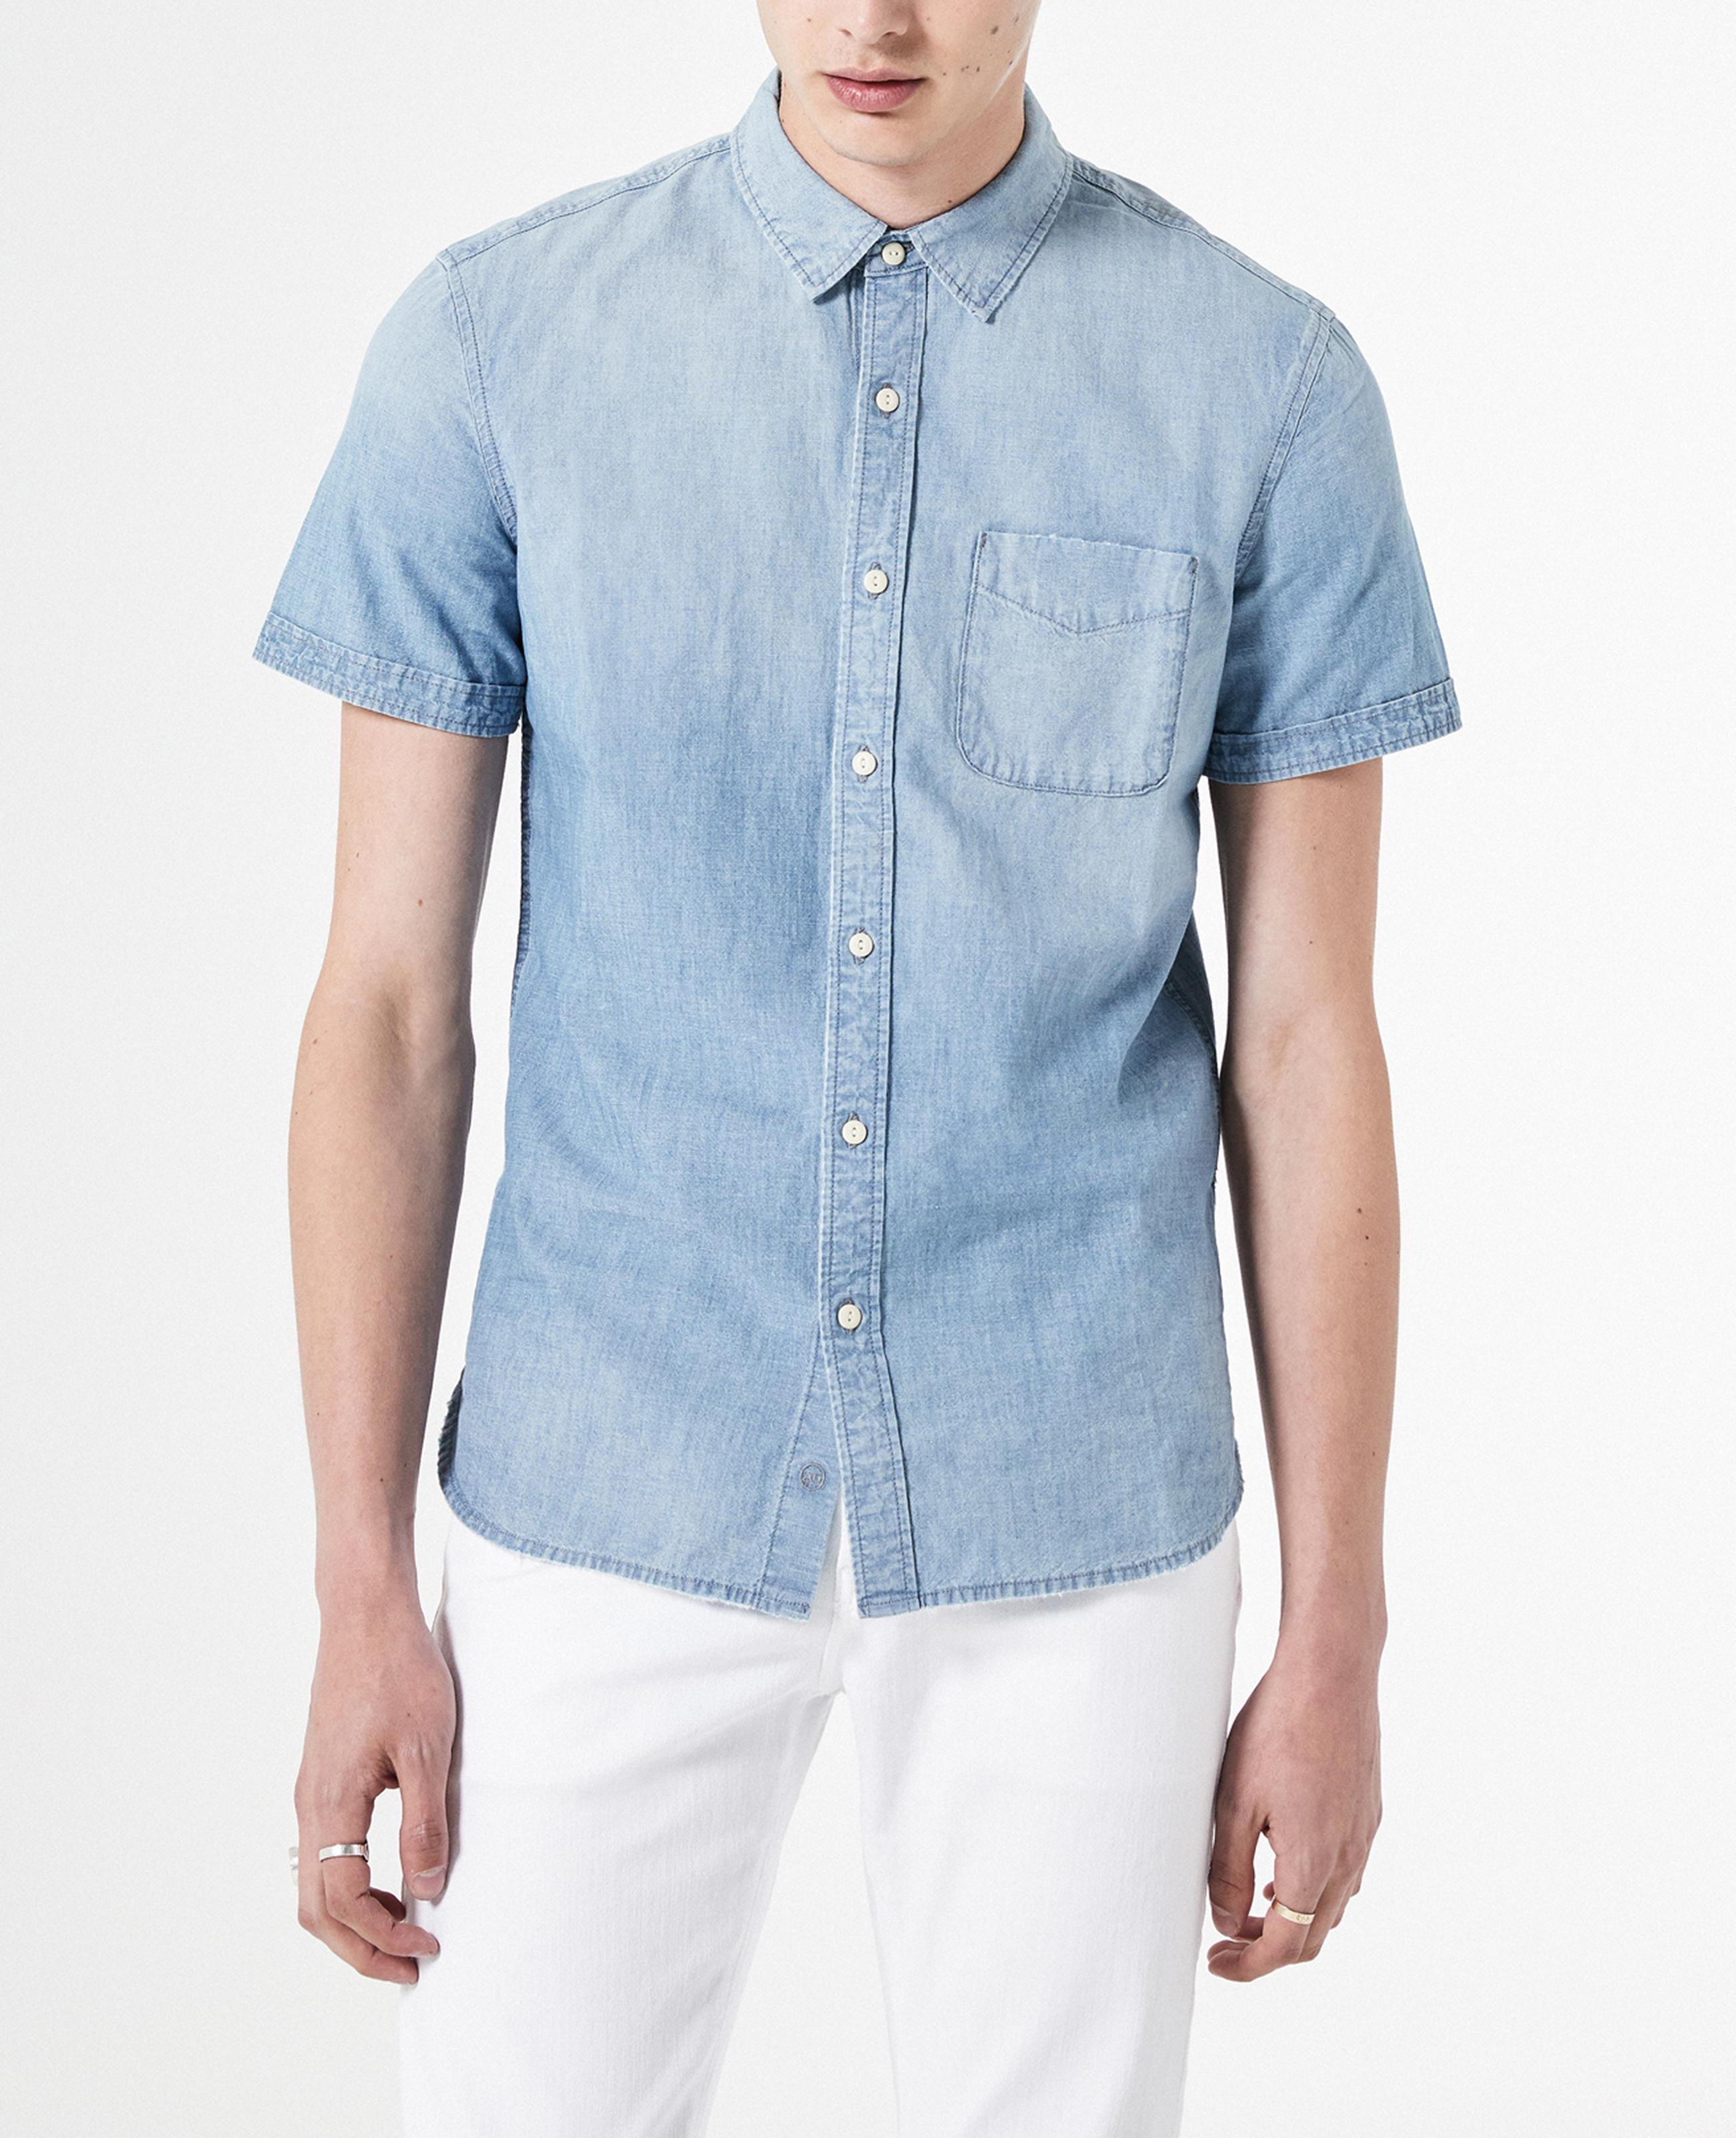 AG Adriano Goldschmied Mens Pearson Short Sleeve Button Down